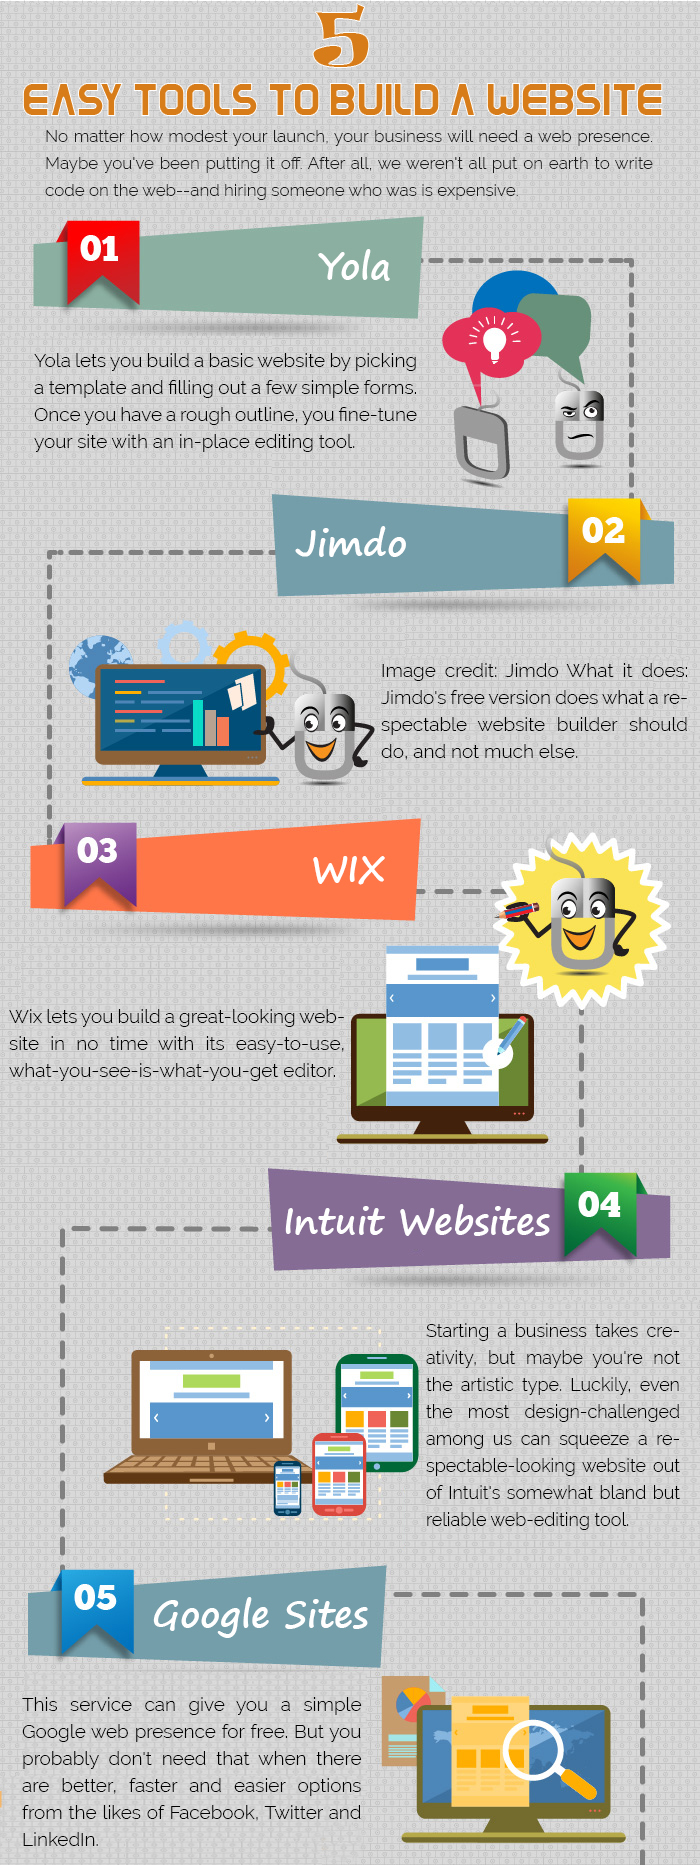 Tips for seo survival in 2015 infographic Build easy website